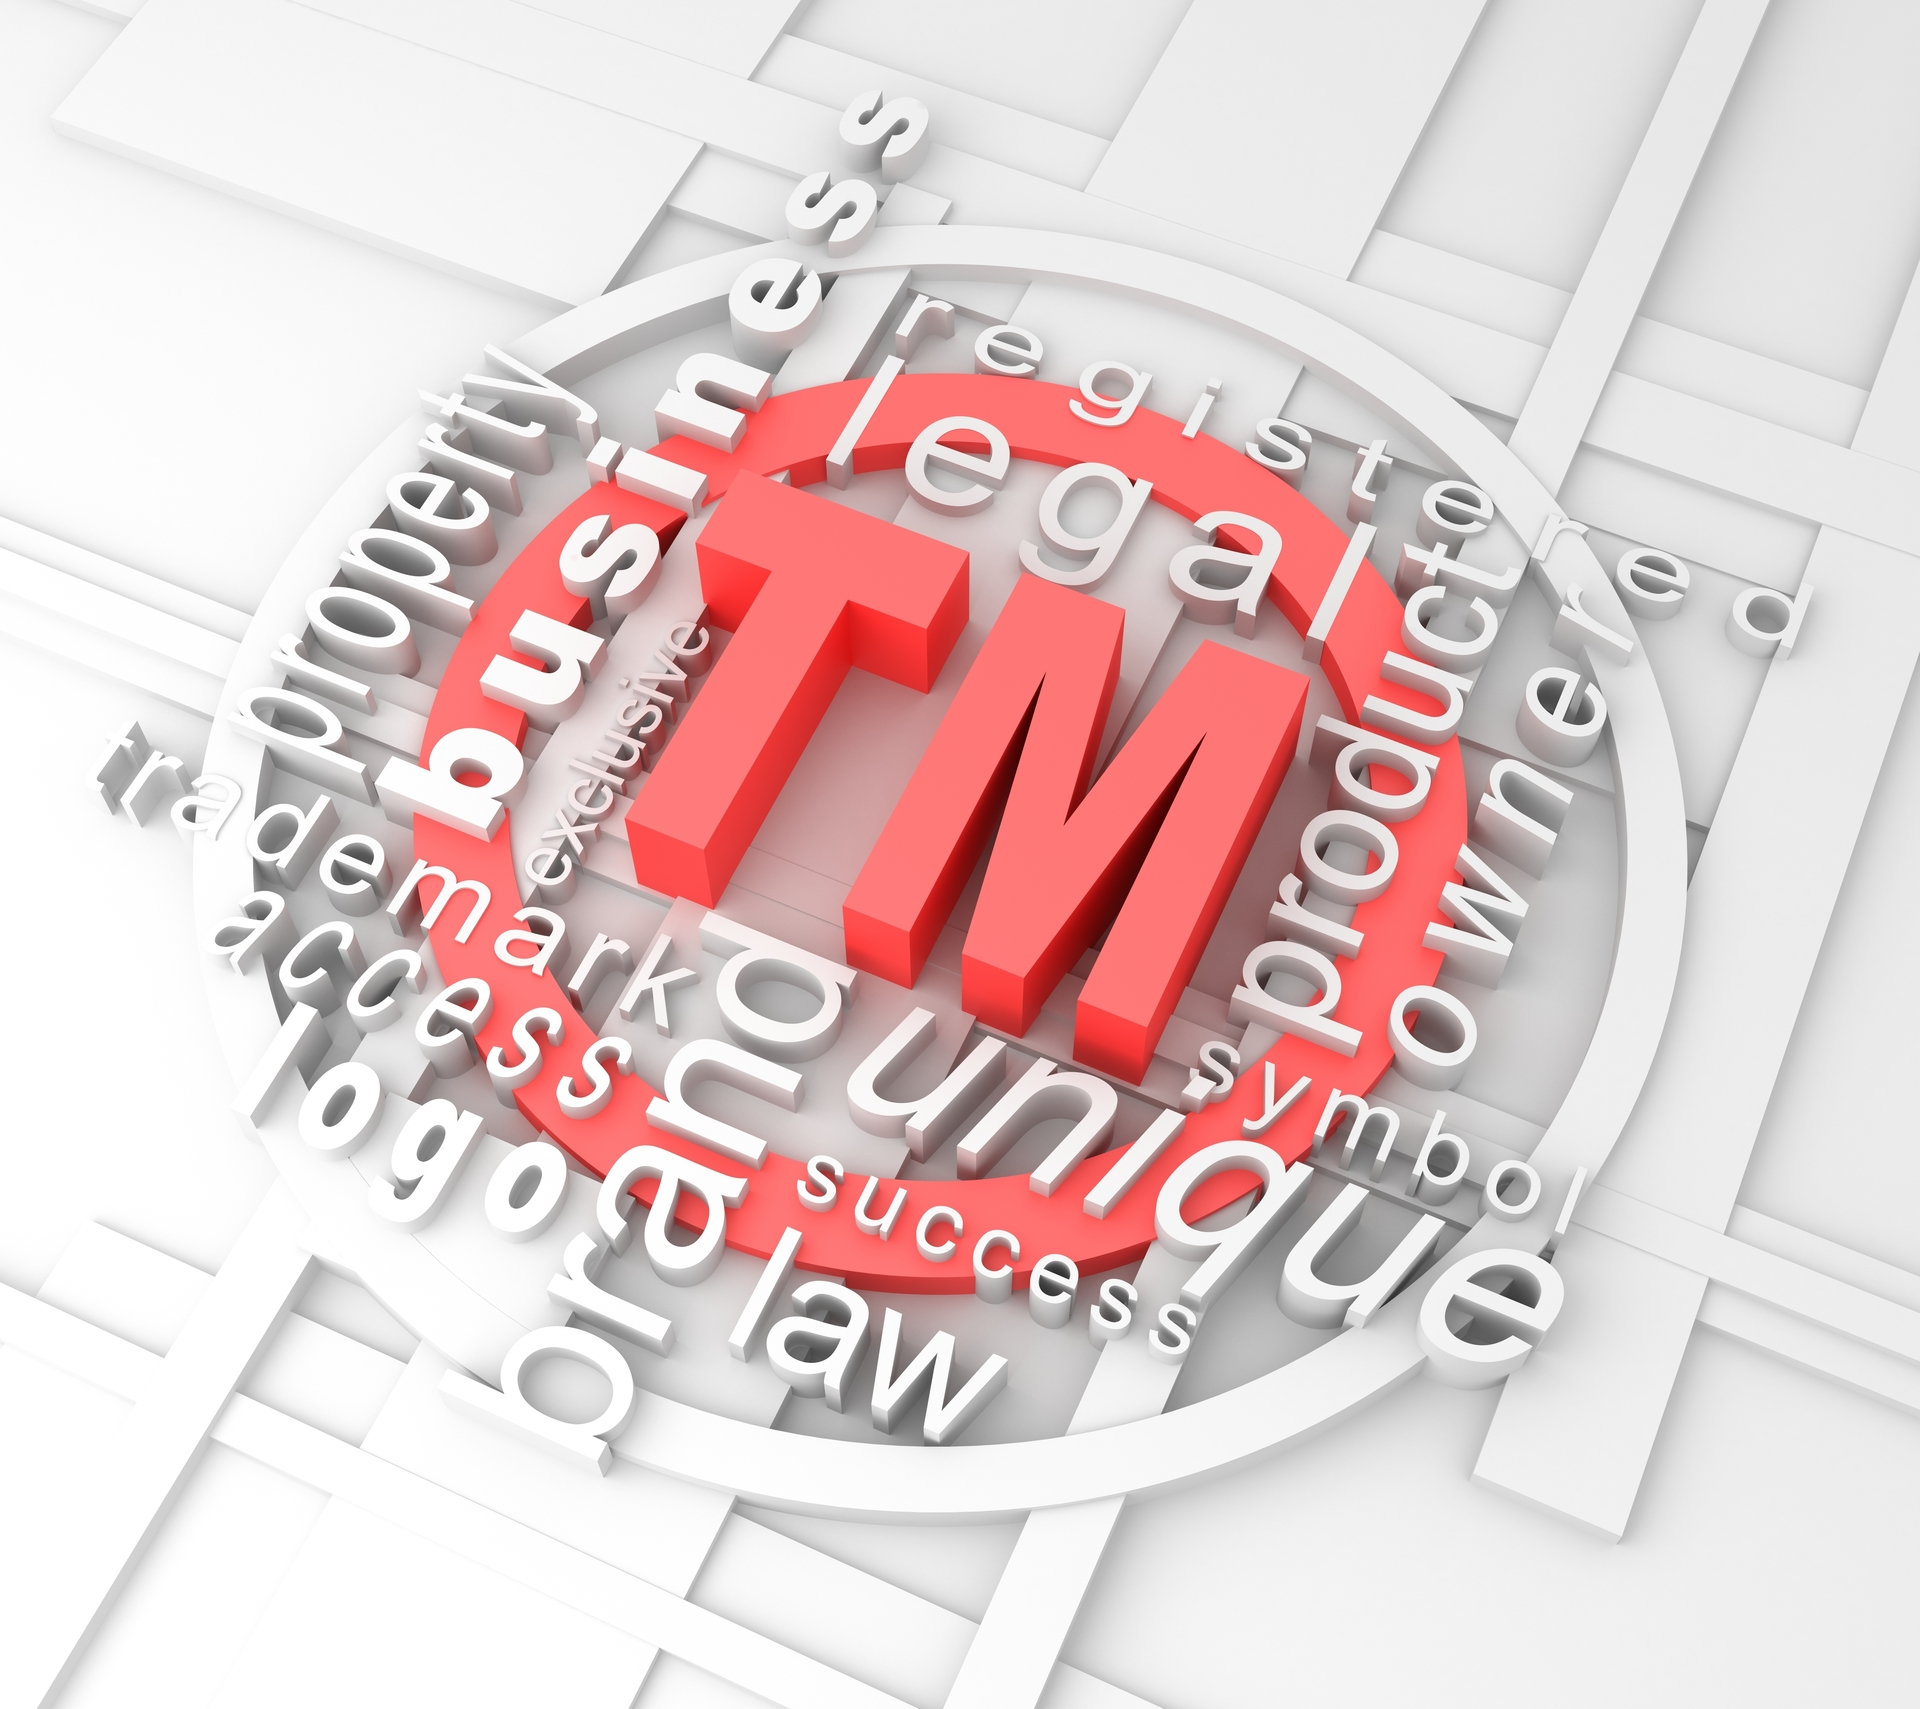 Assure Your Security With Trademark Registration